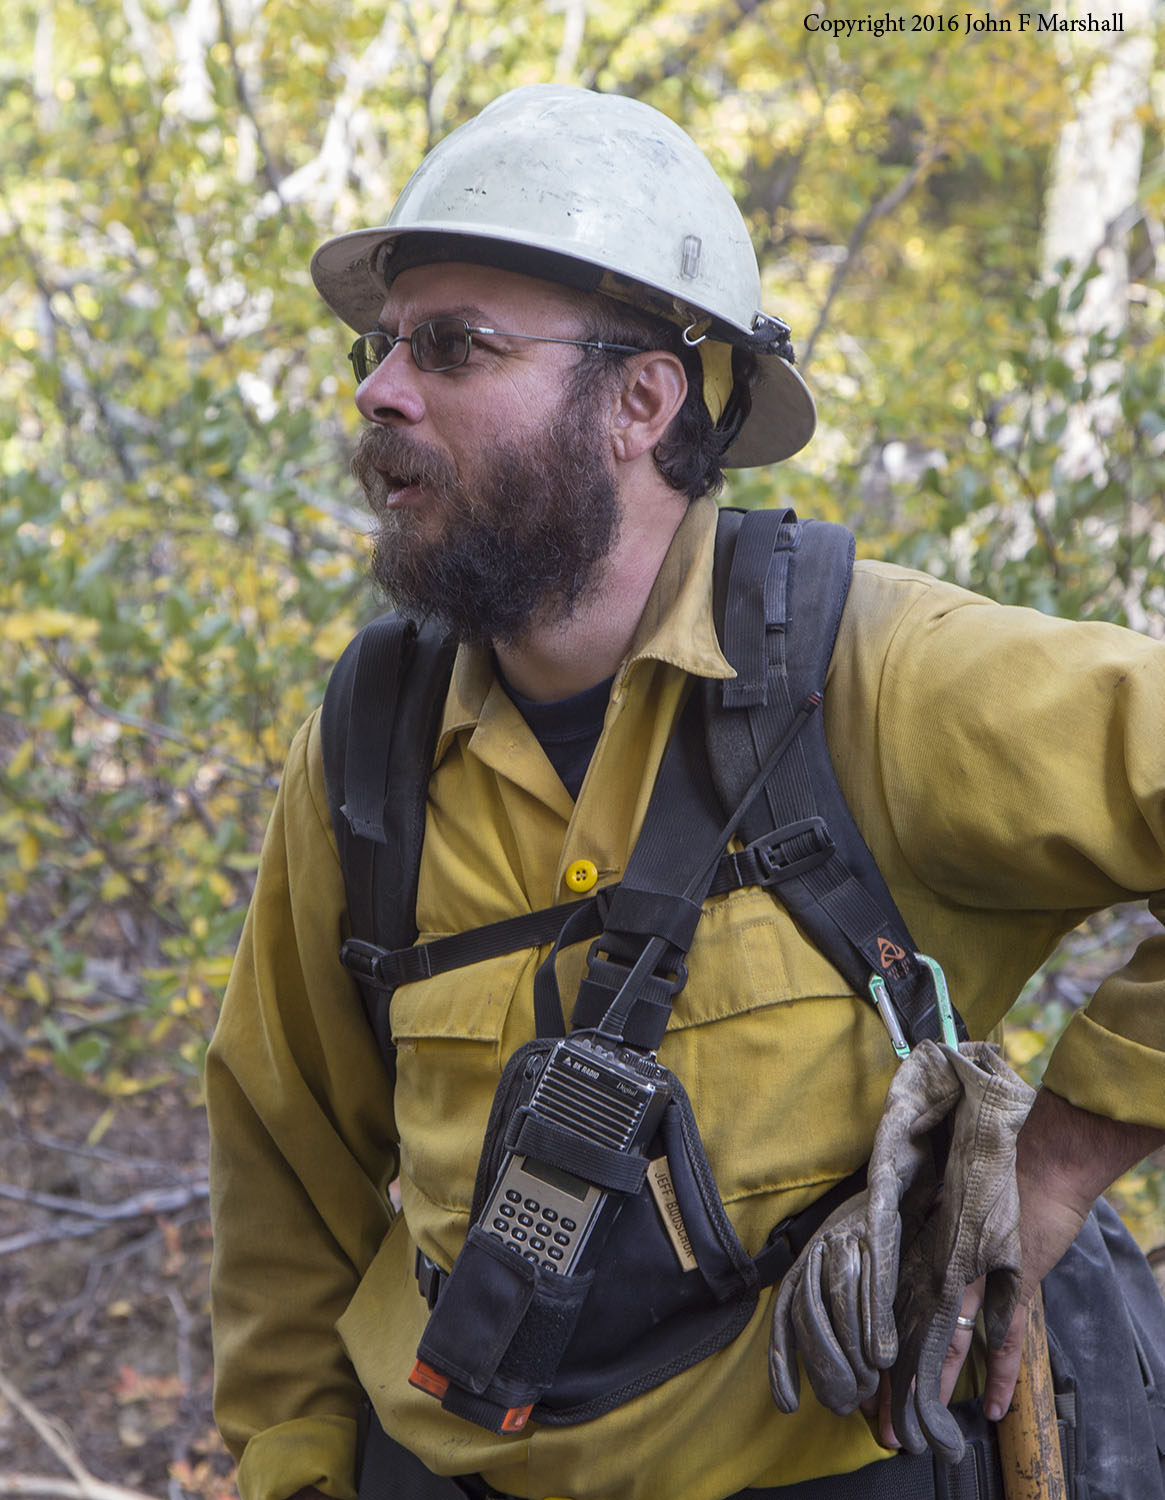 Burn boss, Chelan R.D. Assistant Fire Management Officer (AFMO) Jeff Bouschor.  The clothing, tools and techniques of prescribed fire overlap what is used for fire suppression.